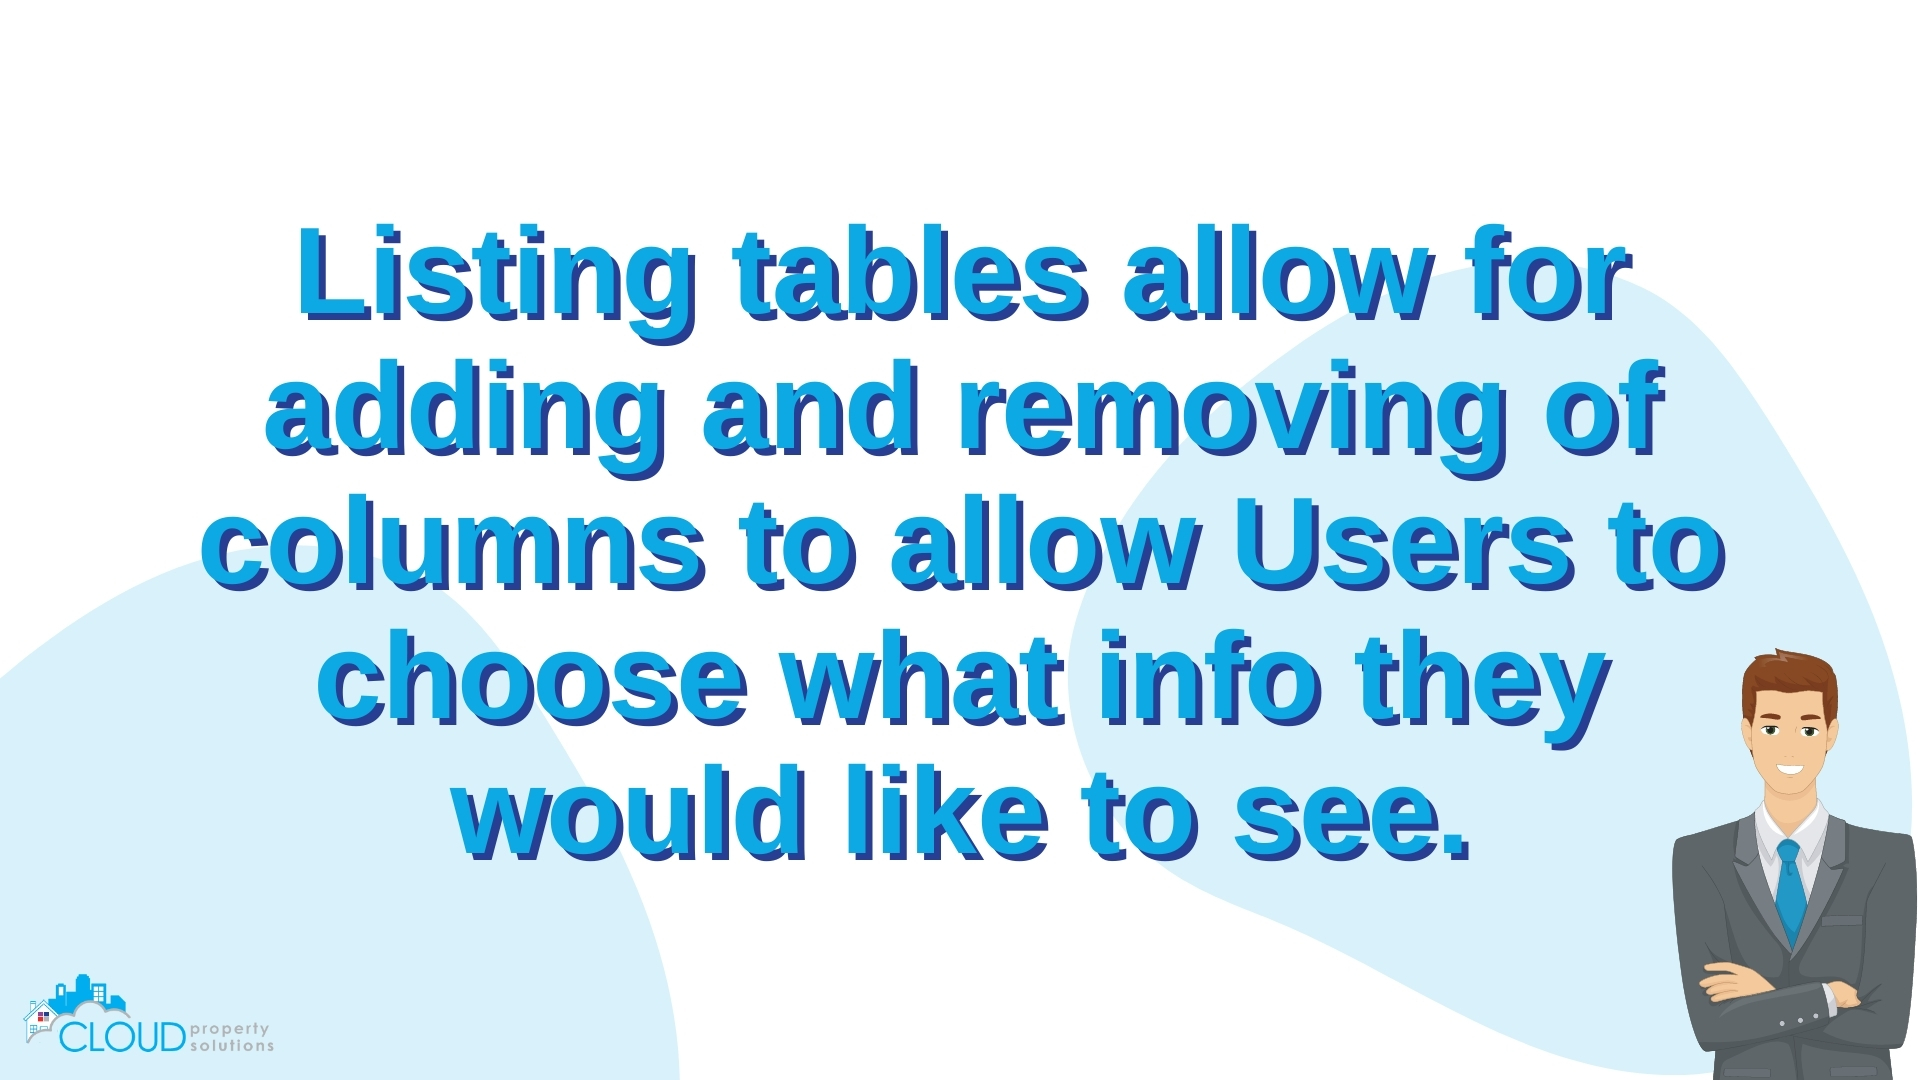 Listing tables allow for adding and removing of columns to allow Users to choose what info they would like to see.